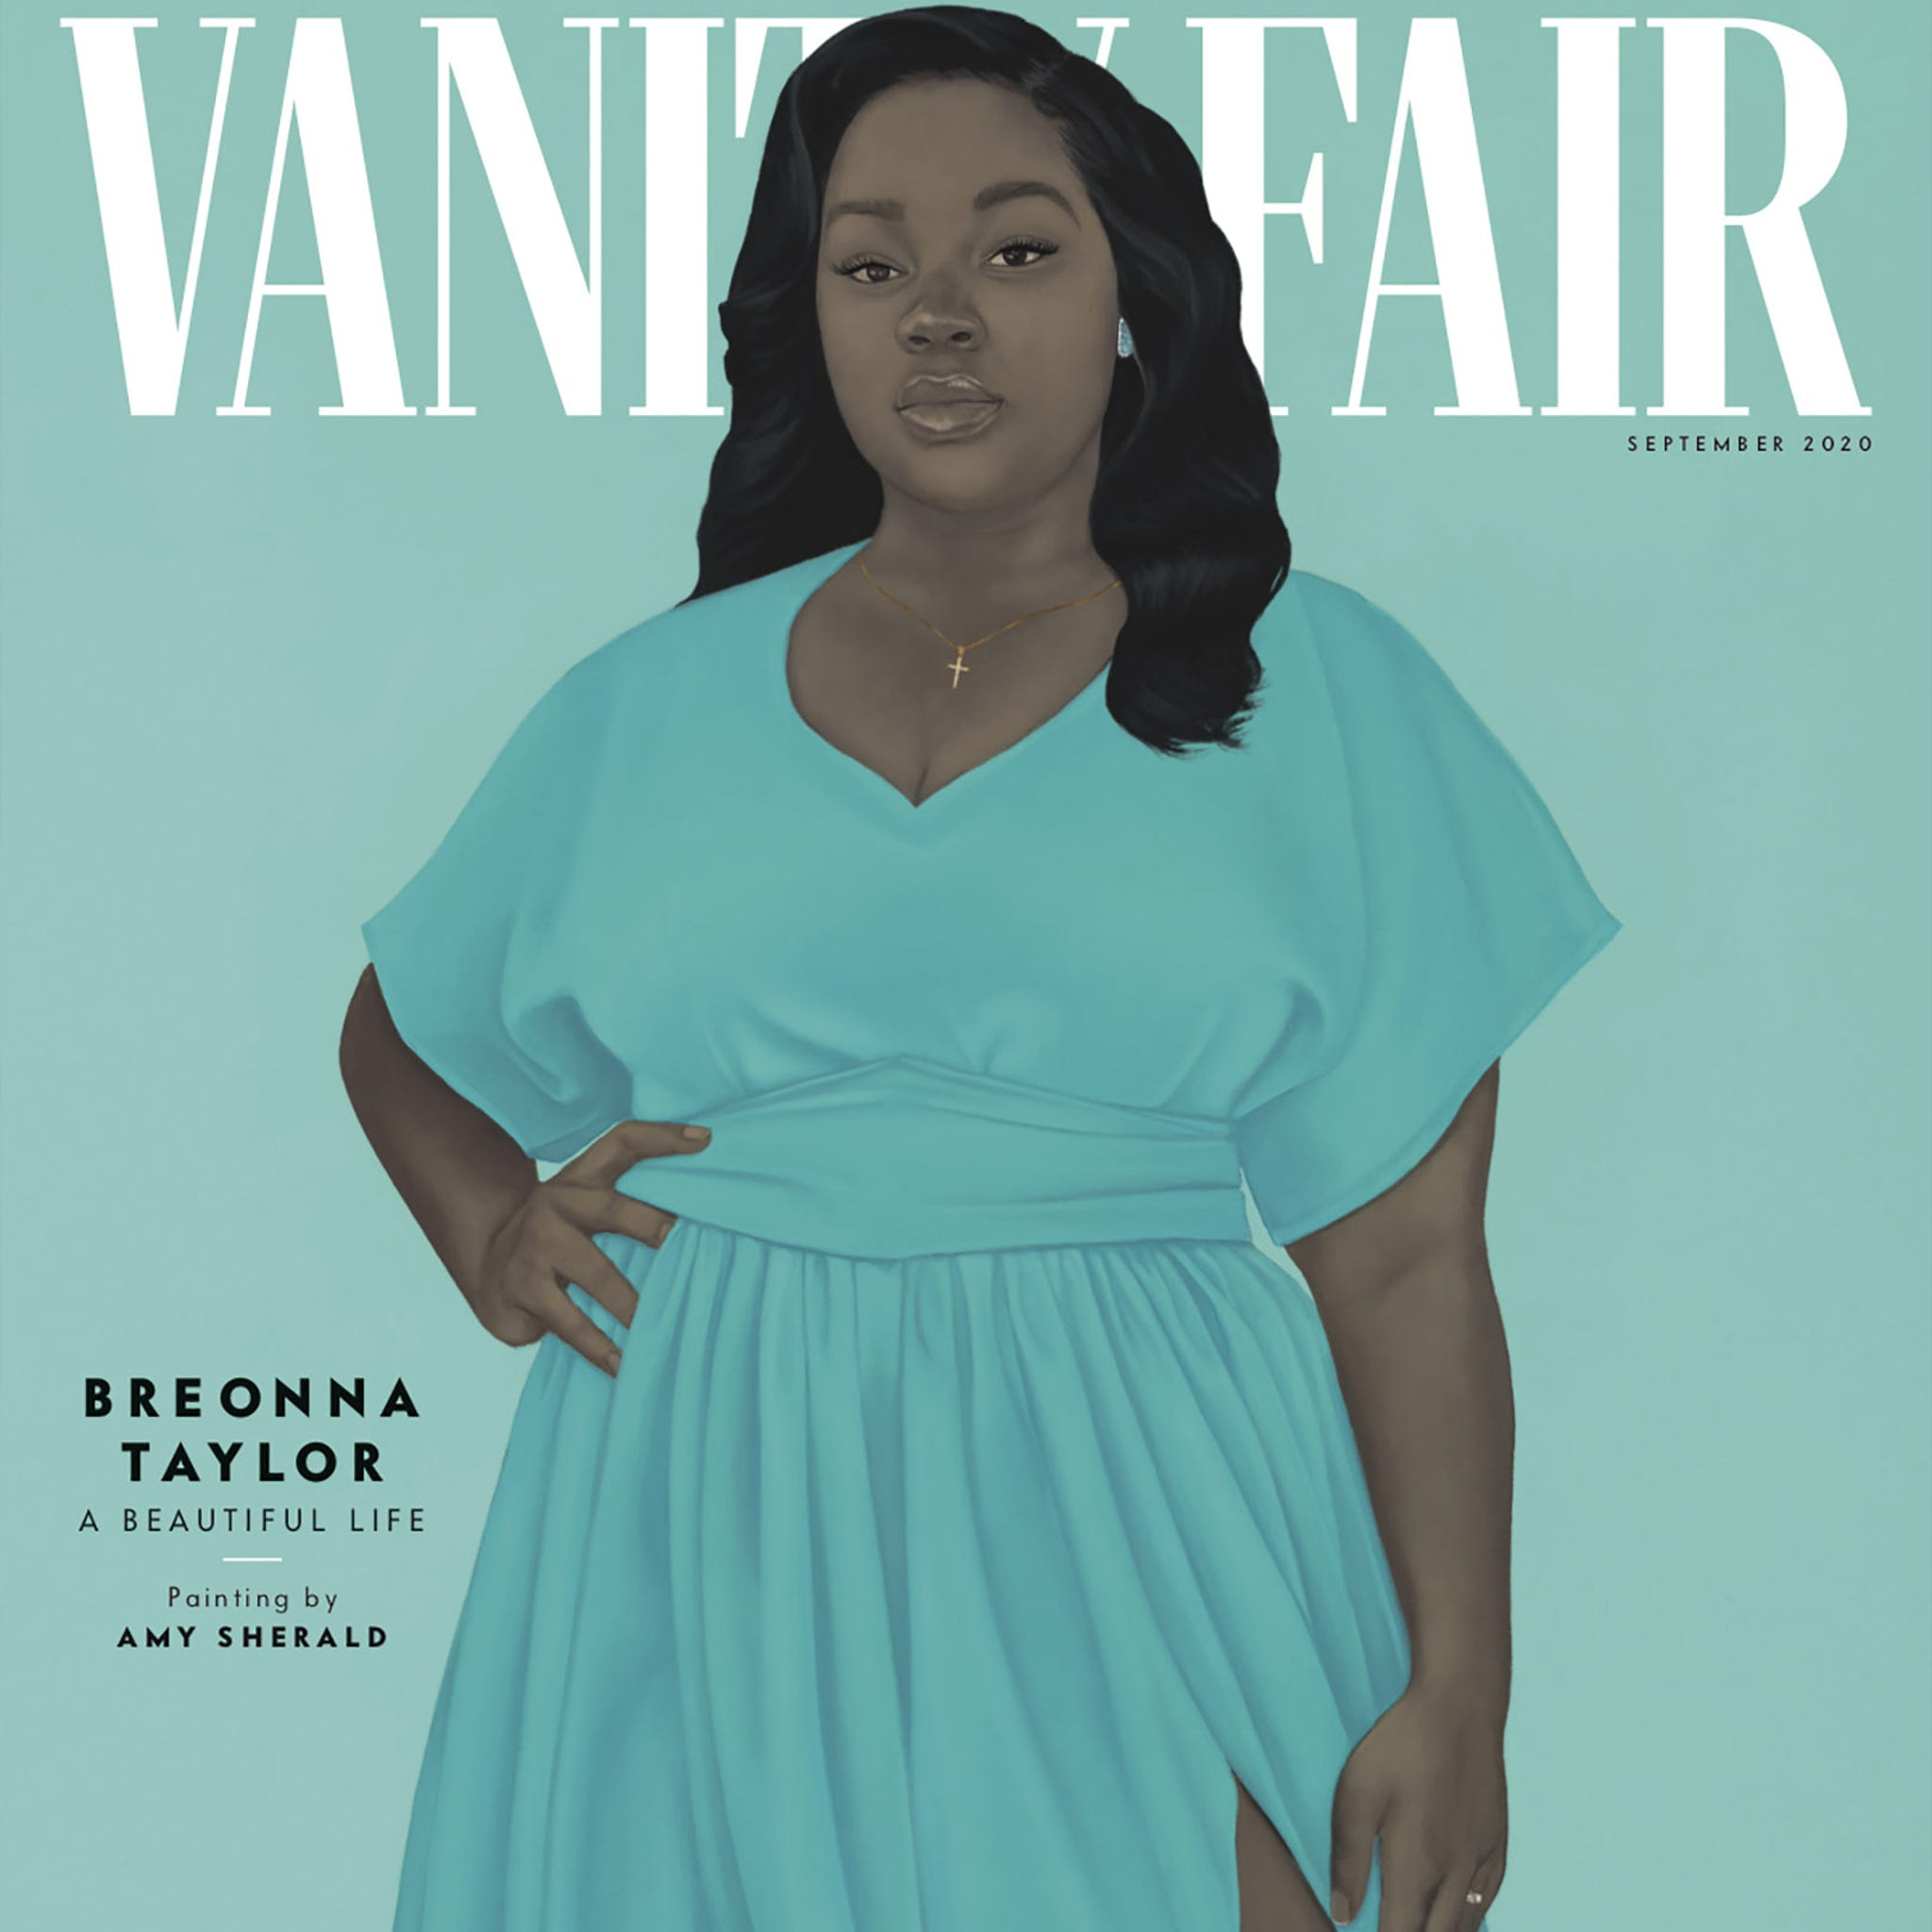 Breonna Taylor Covers Vanity Fair As Her Mother Pays Tribute In September Issue